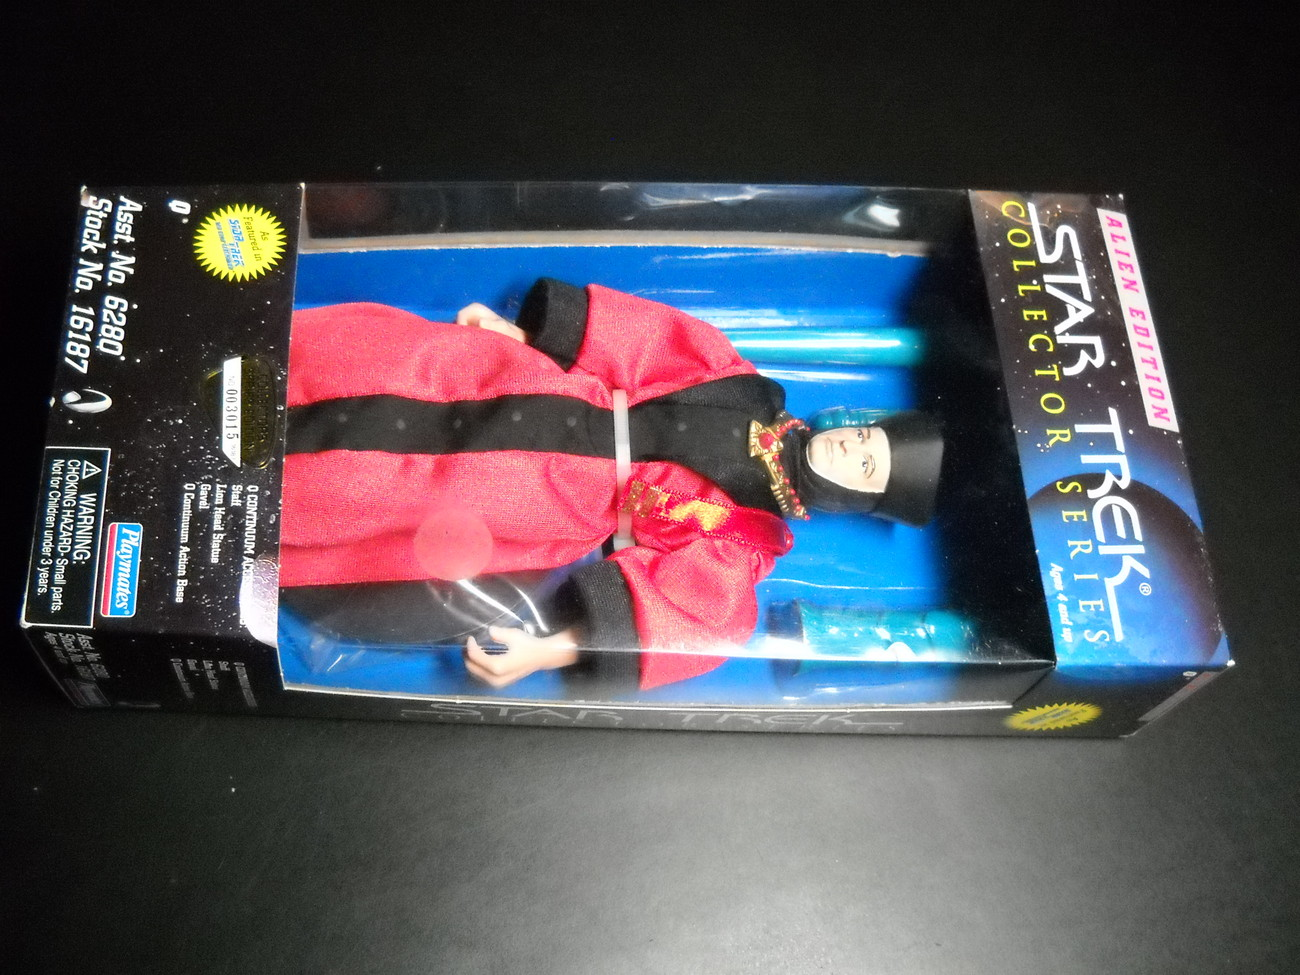 Toy star trek playmates alien edition captain q in judges robe 1997 9 inch boxed sealed 02